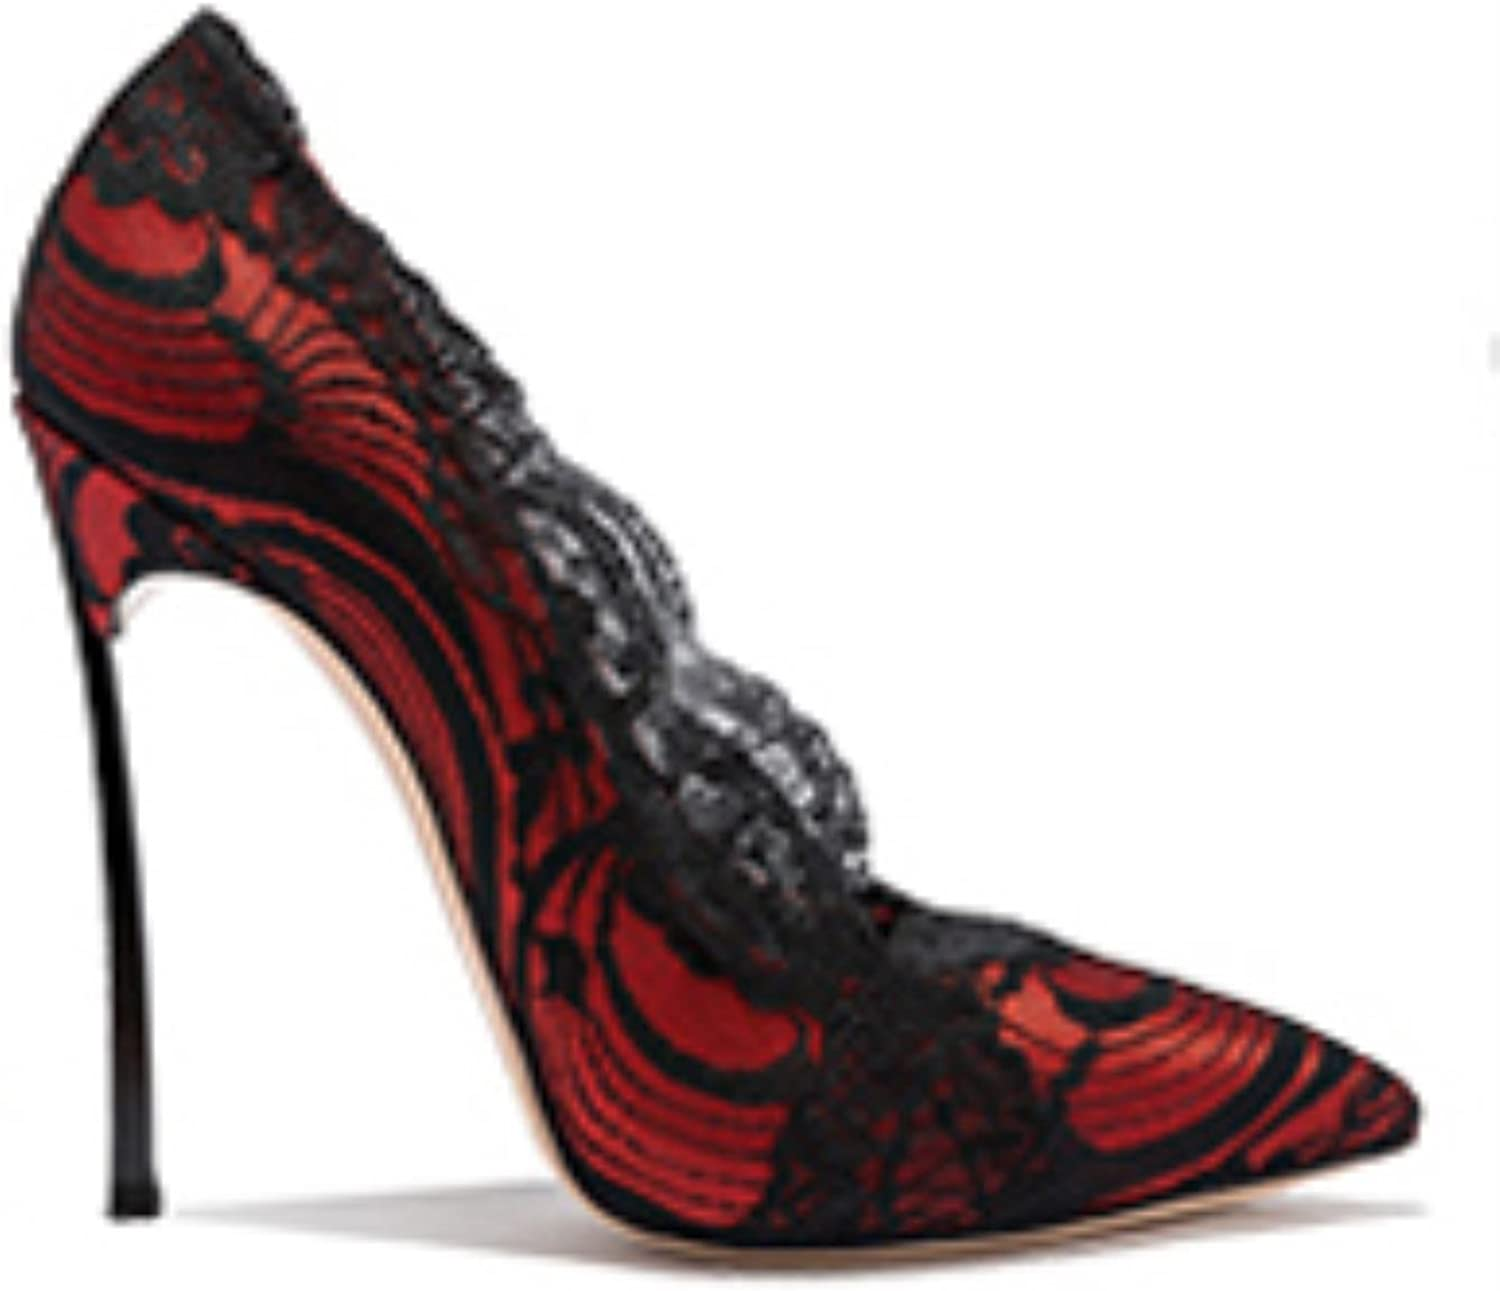 Sexy Lace Flower Pointed Toe Women Pumps 10cm Metal High Heels Night Club Woman Party shoes